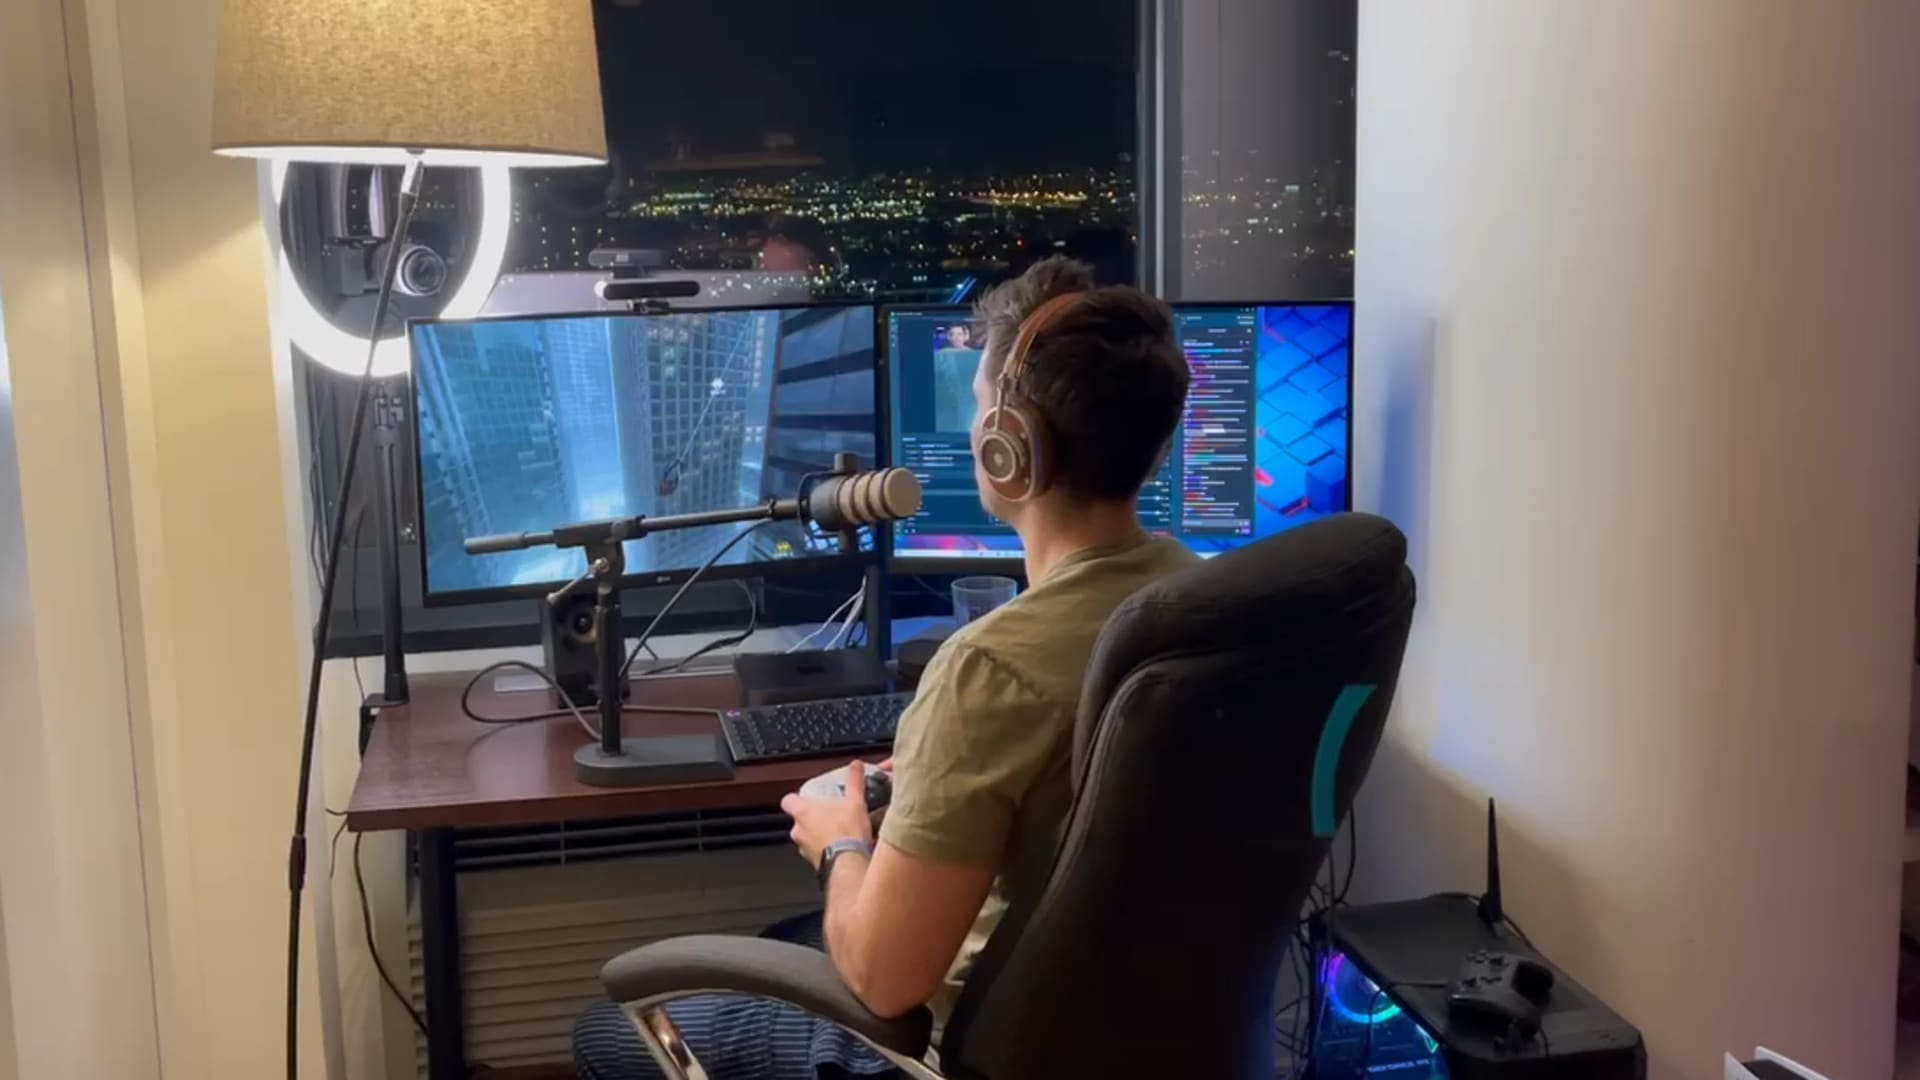 Gamers pay $5 a month to watch Matt Doyle play video games on streaming platform Twitch.